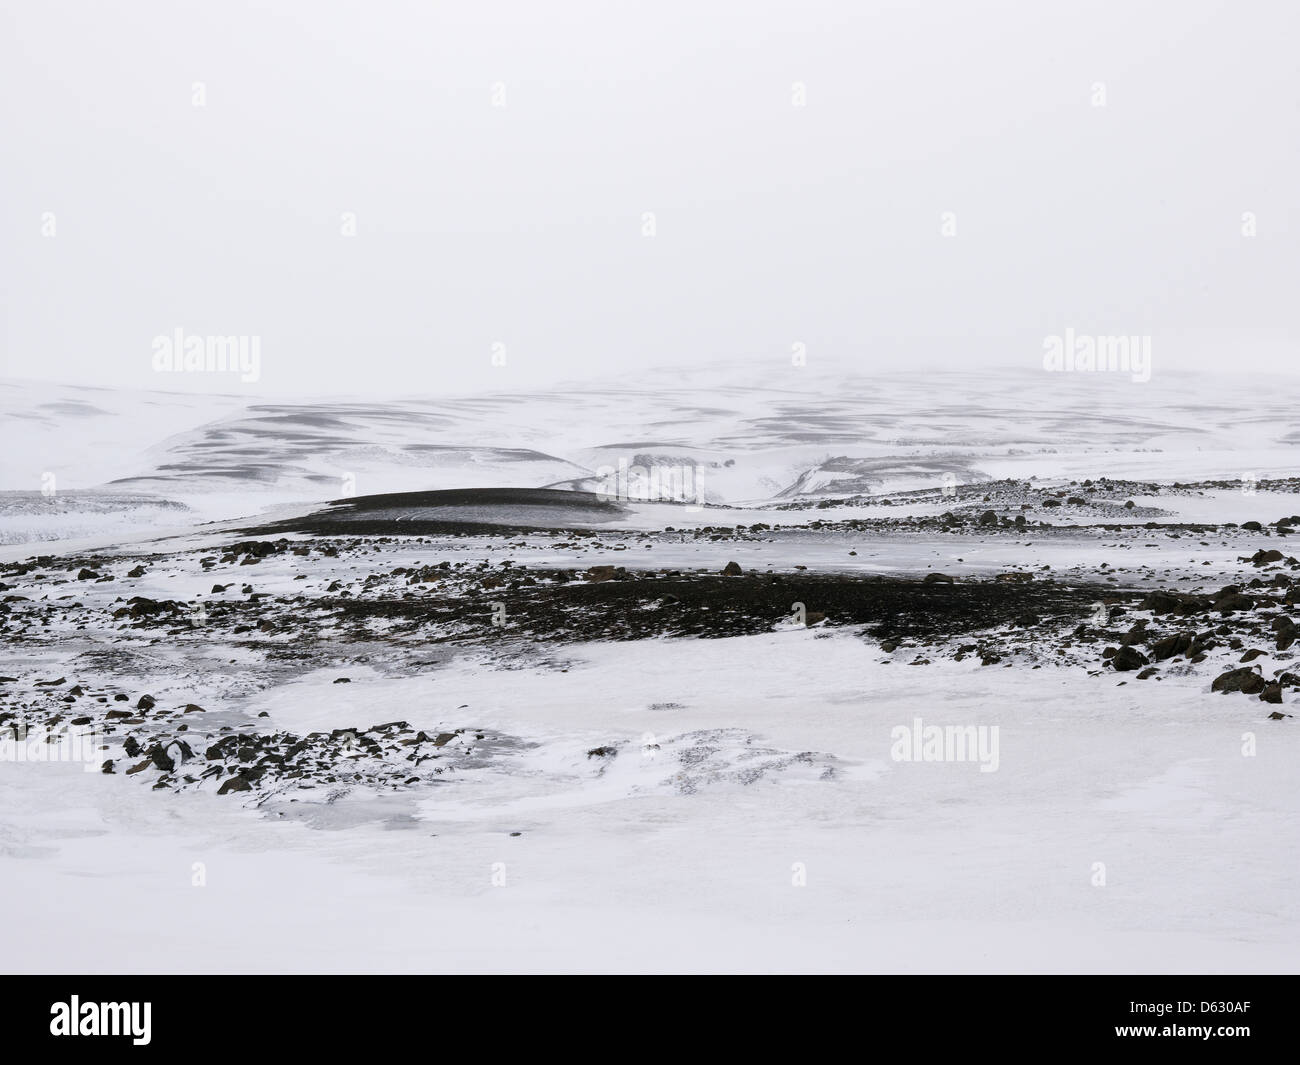 snow-covered lava fields and mountain hills on Northern Iceland - Stock Image